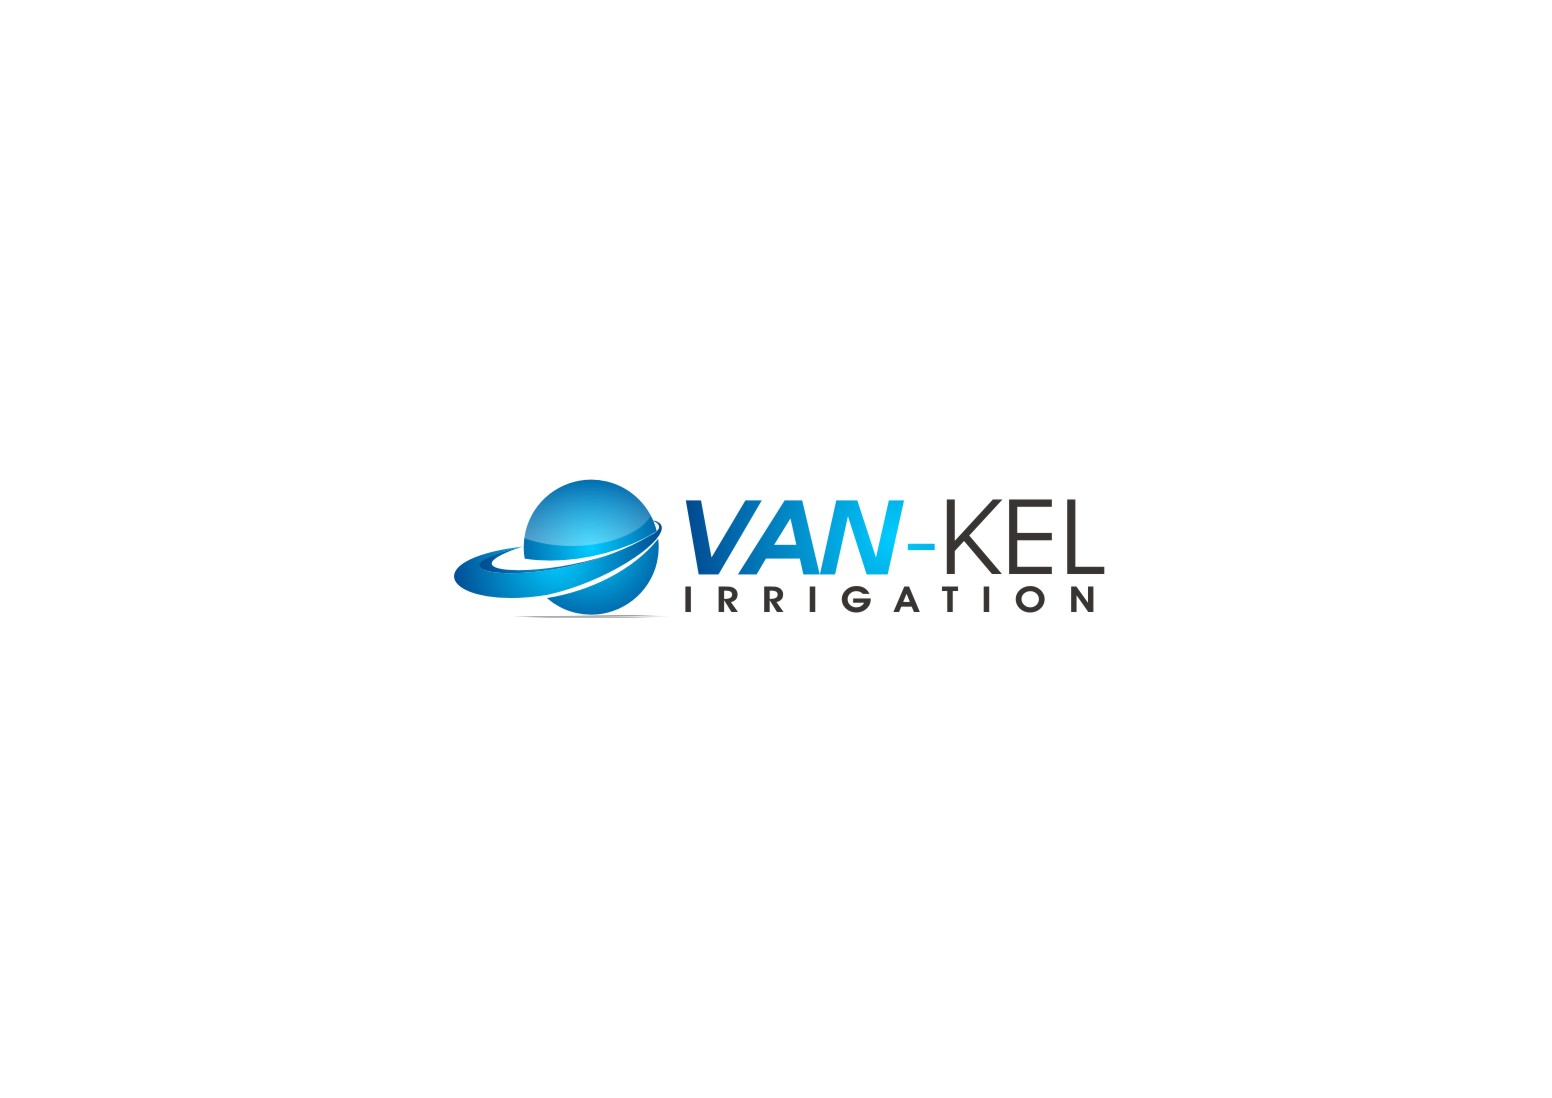 Logo Design by yanxsant - Entry No. 85 in the Logo Design Contest Van-Kel Irrigation Logo Design.